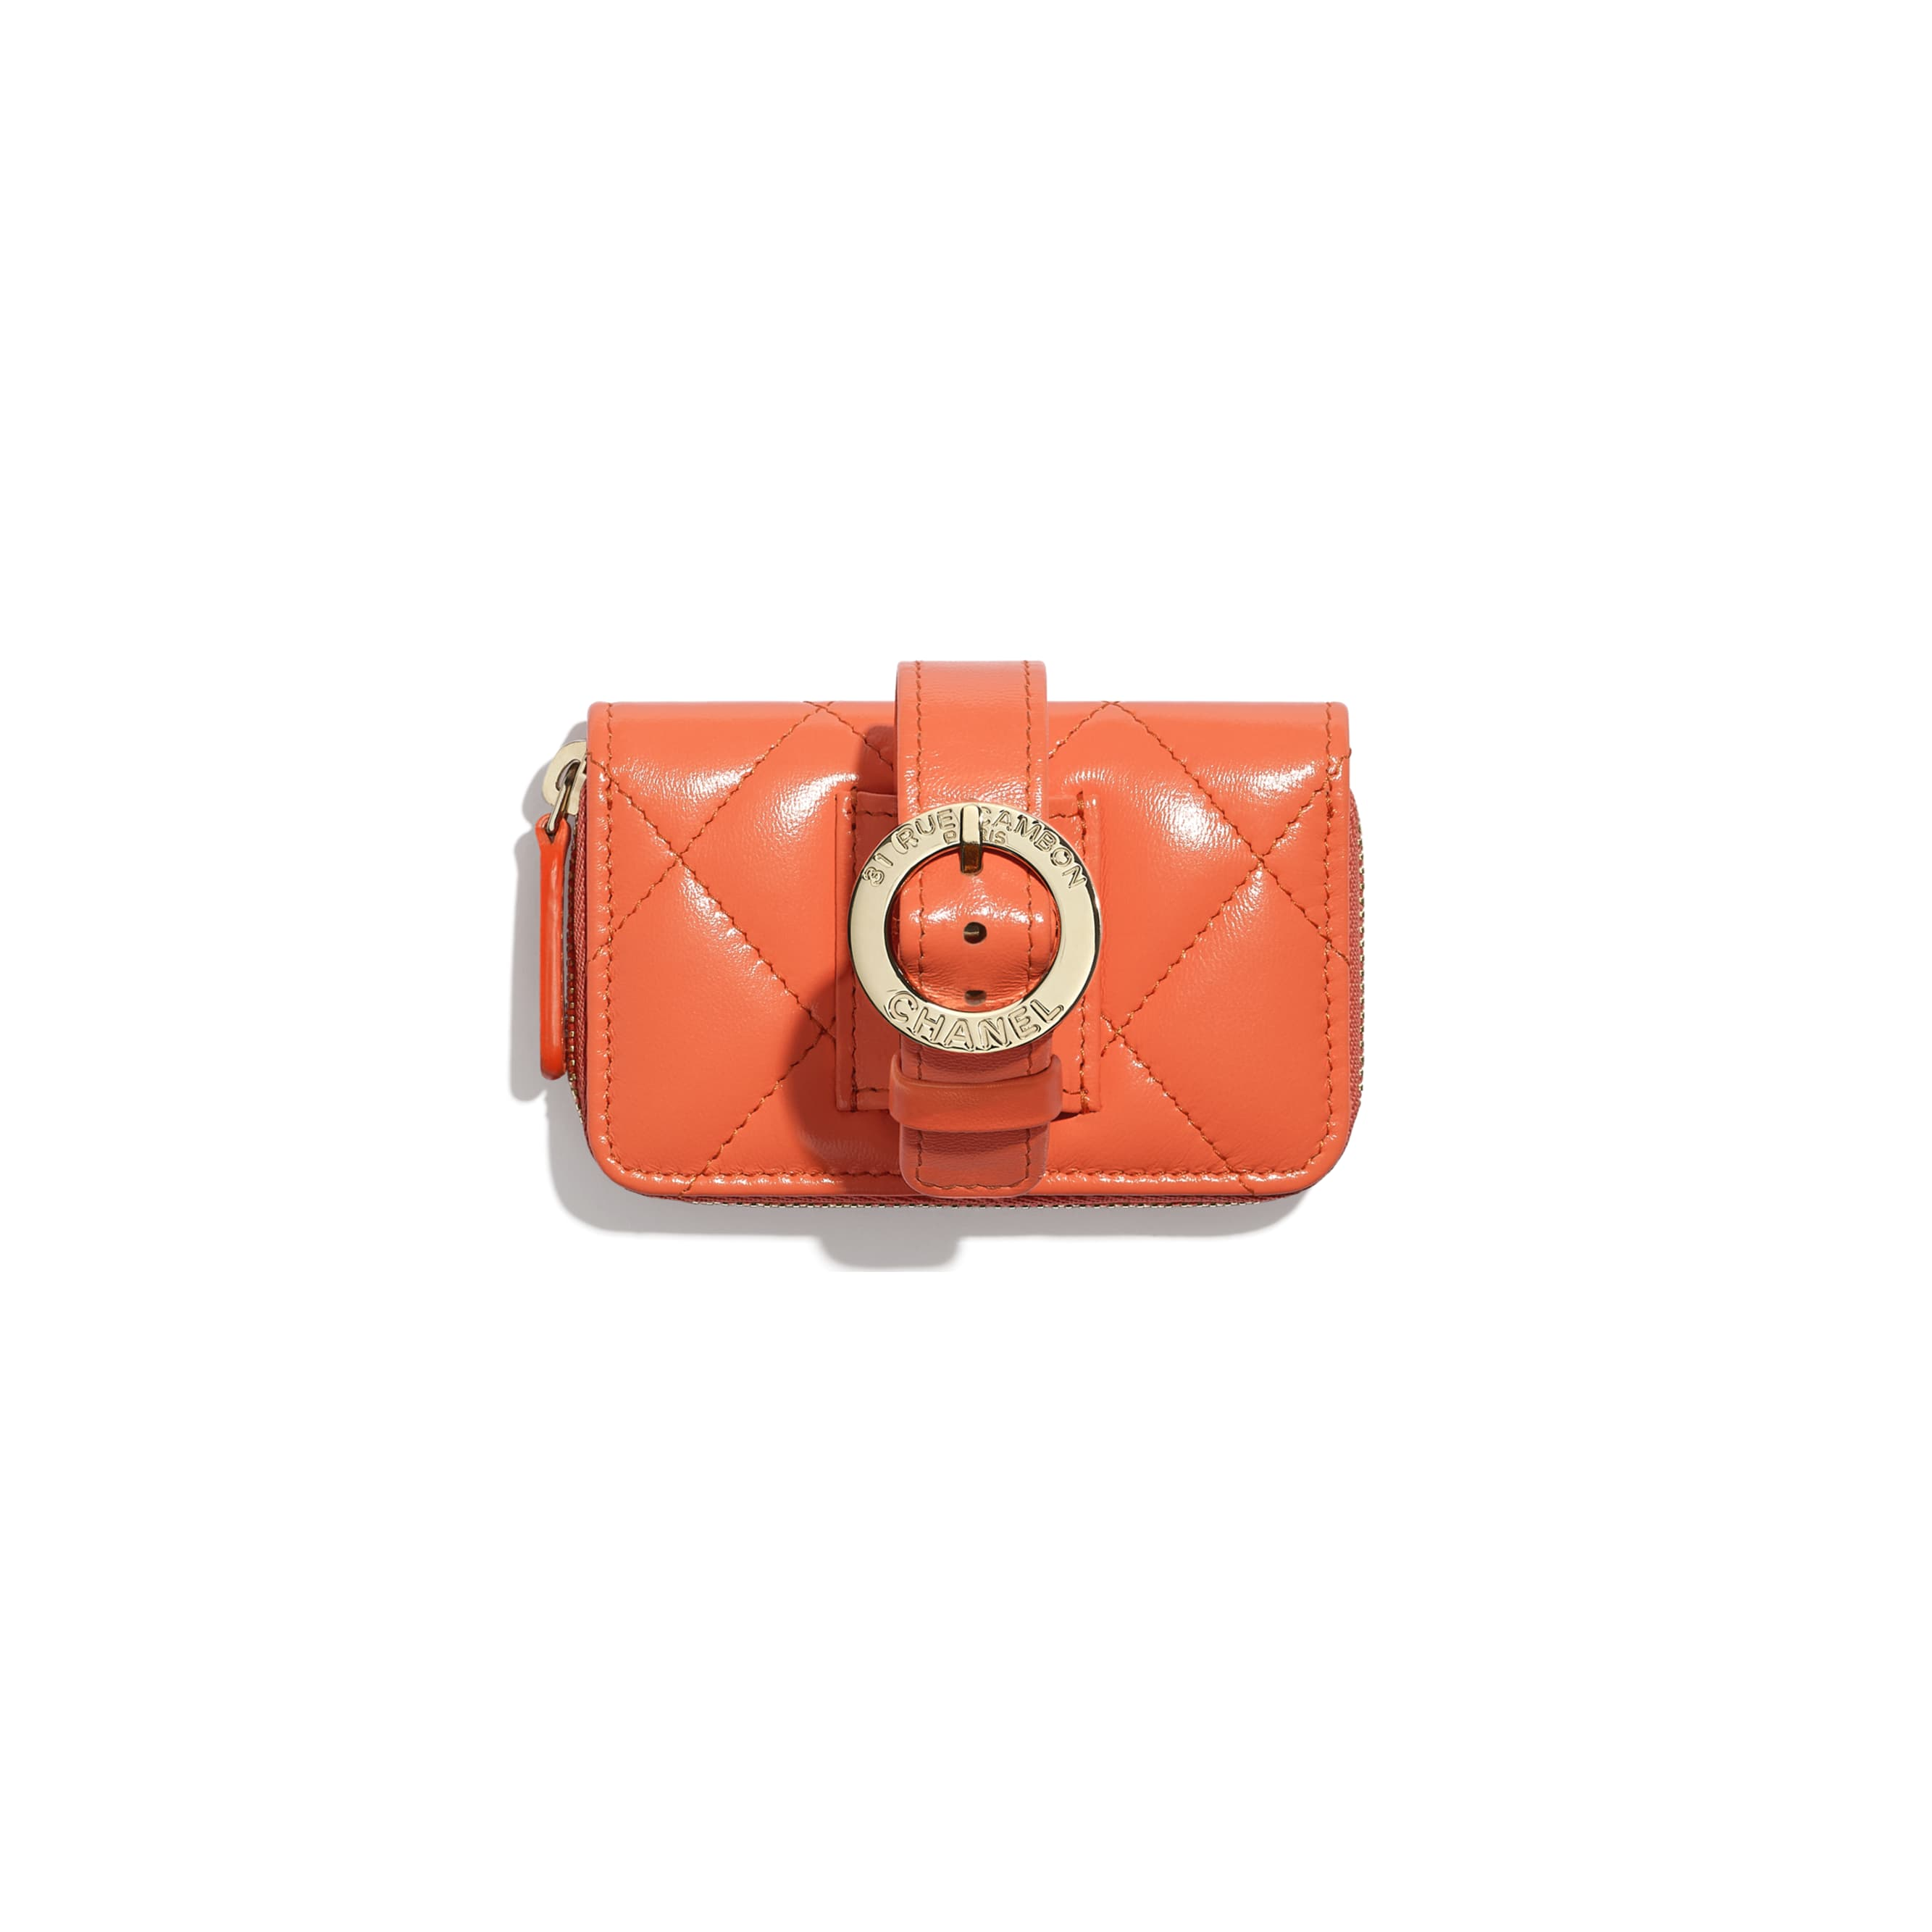 Zipped Coin Purse Wristlet - Orange - Shiny Crumpled Lambskin, Lacquered & Gold-Tone Metal - Alternative view - see standard sized version